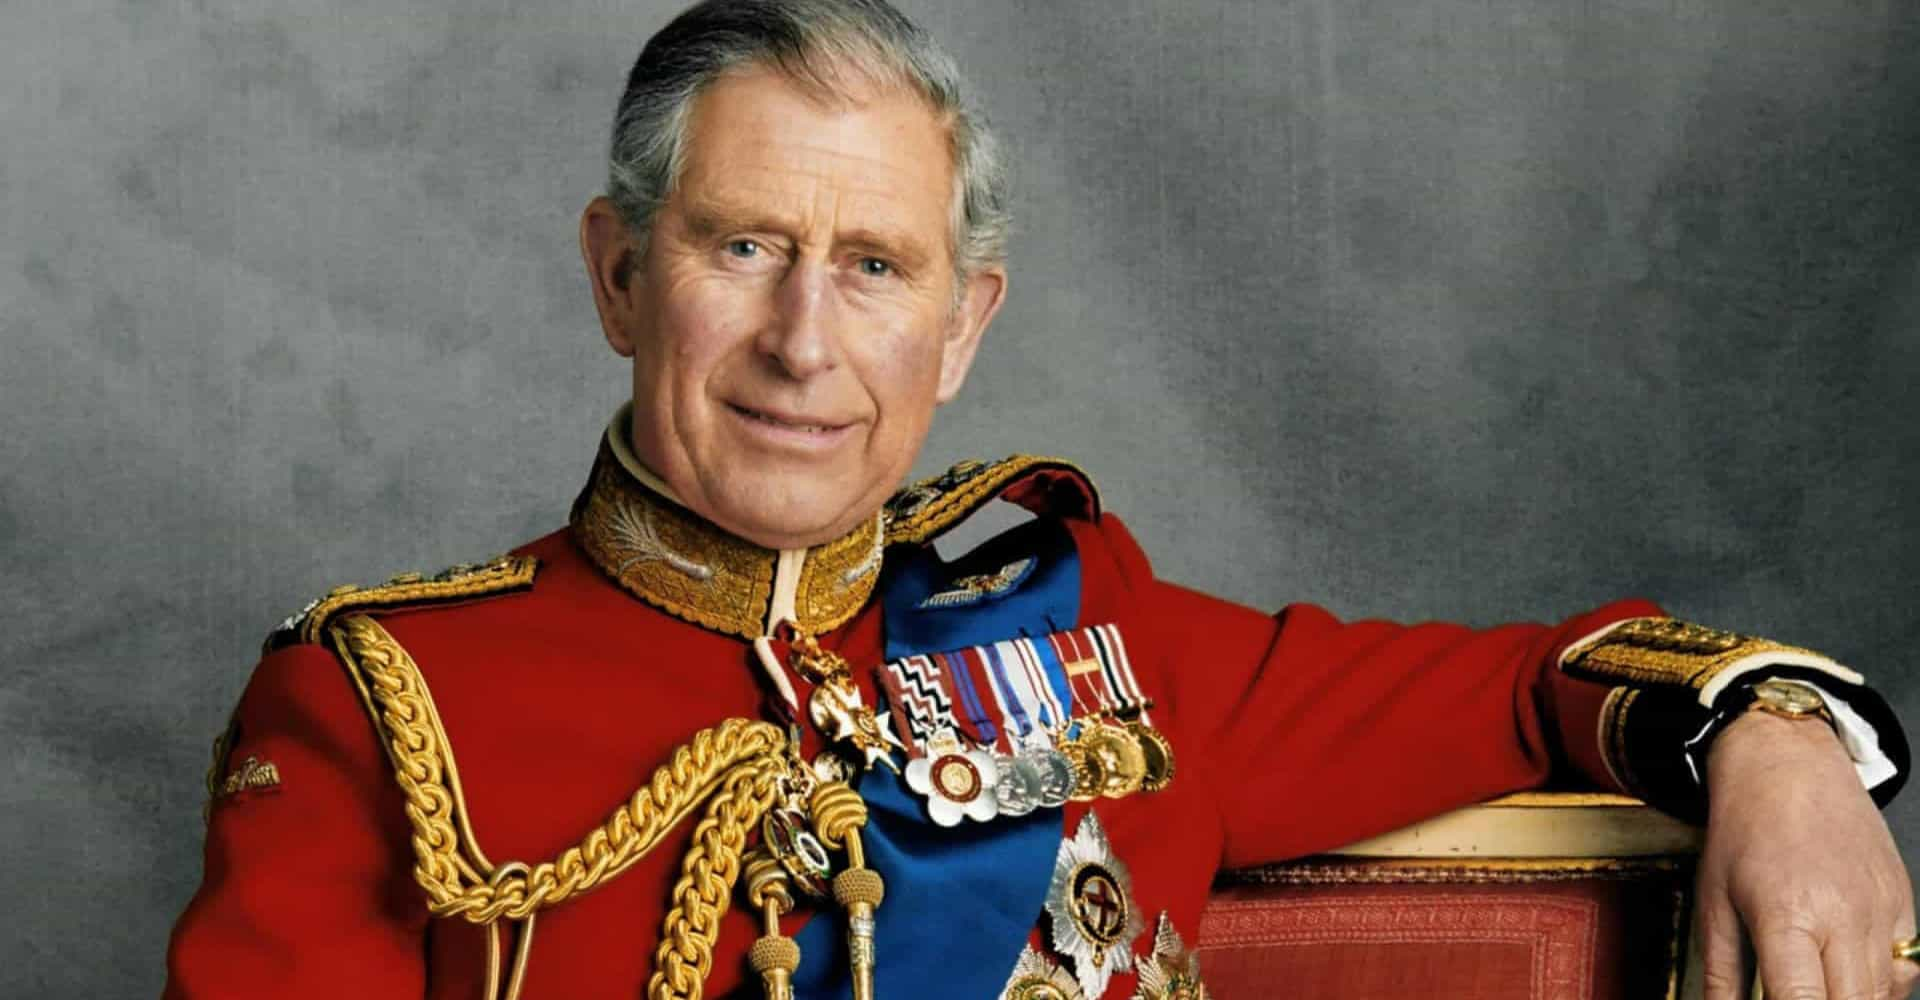 HRH Prince Charles: a life in pictures